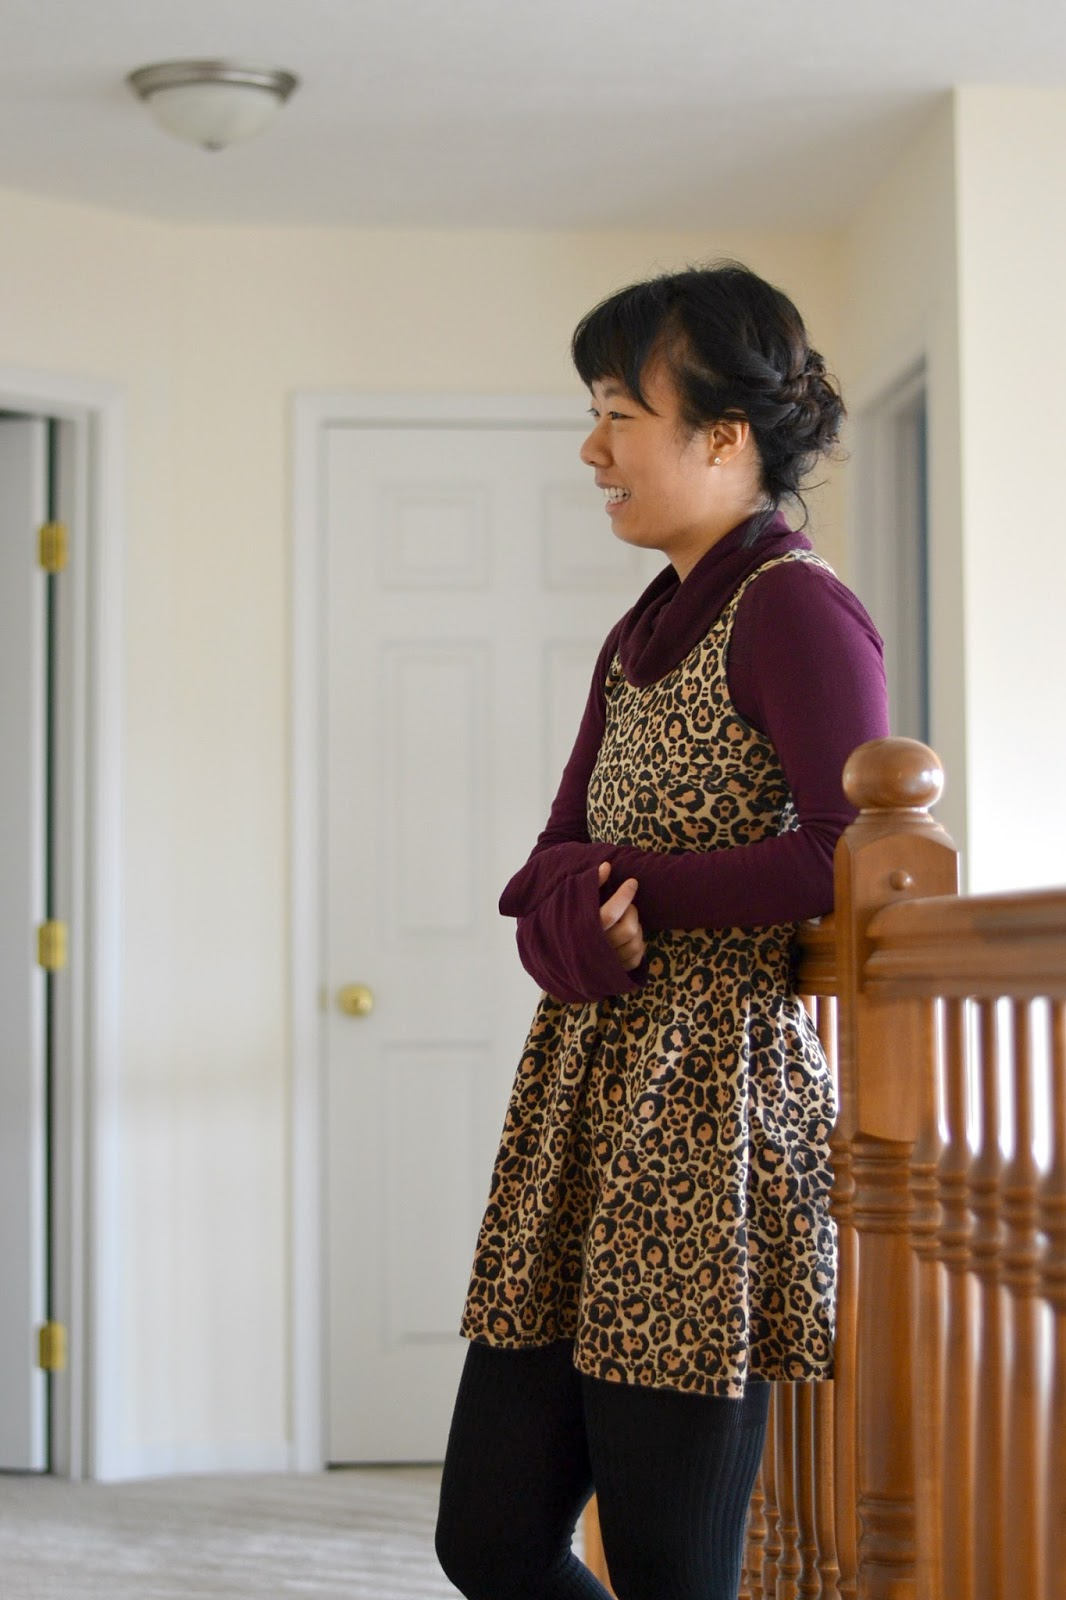 cowlneck long sleeve and dress, wearing dresses in winter